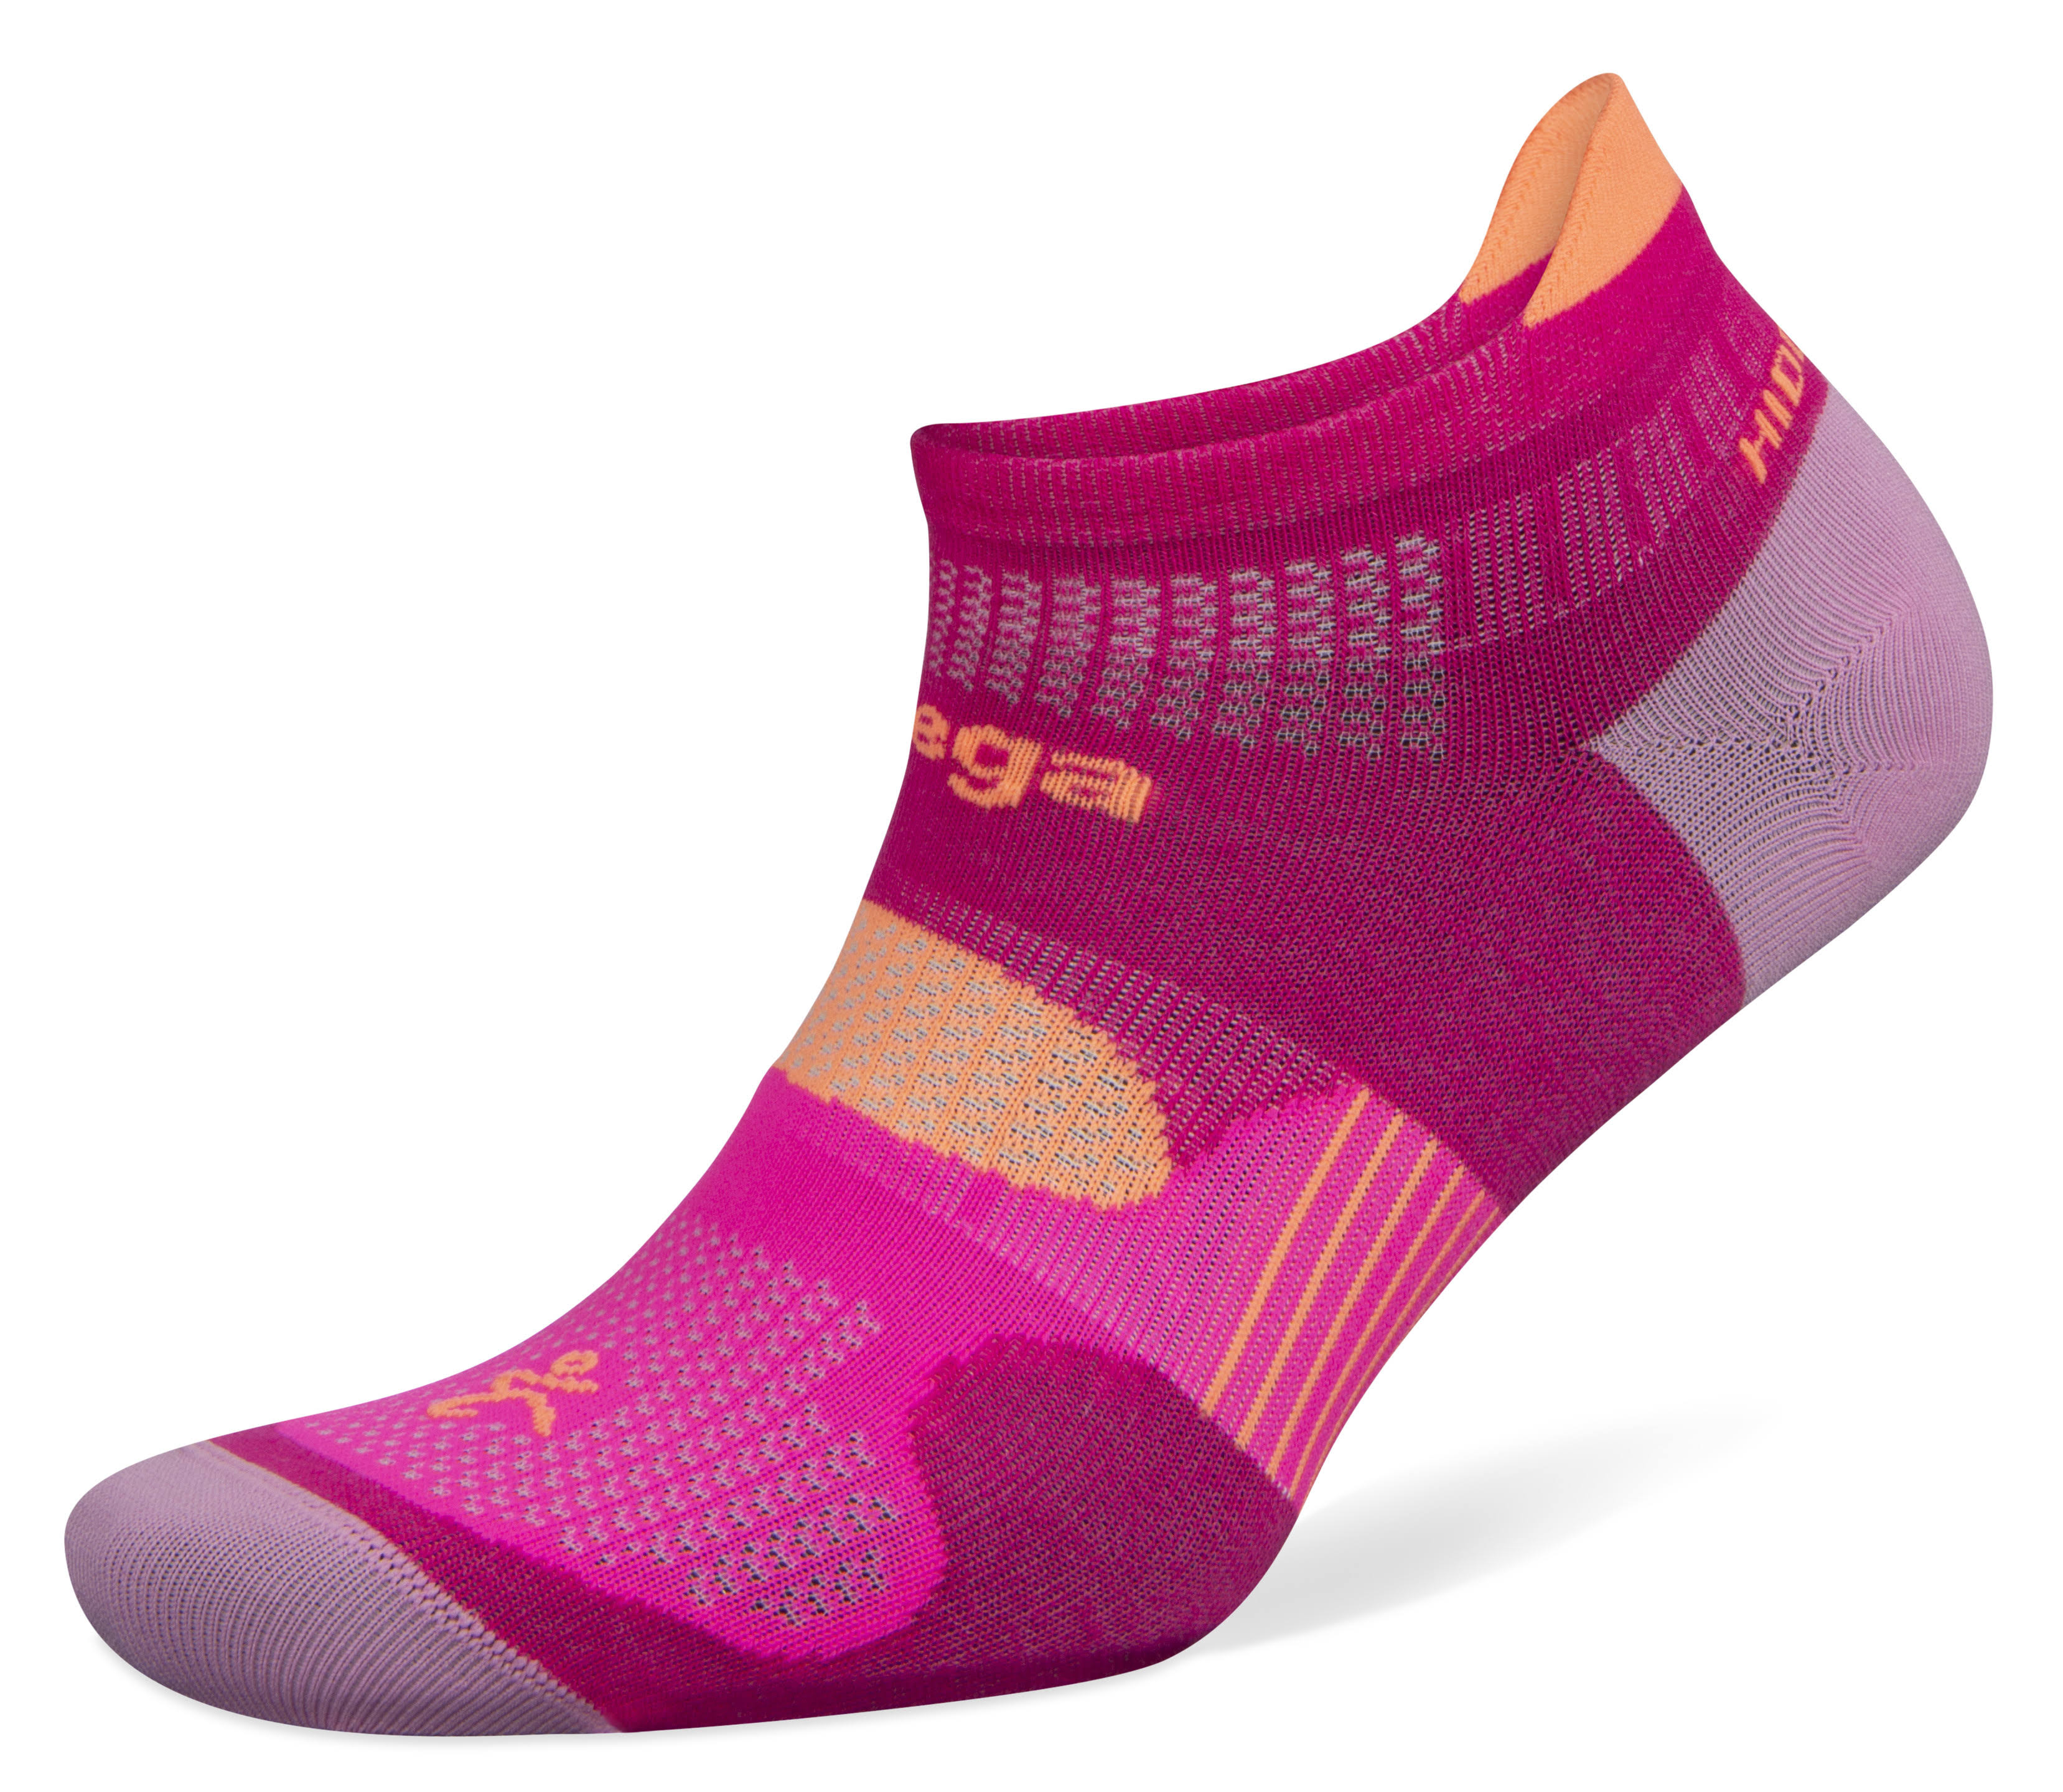 Balega Hidden Dry Socks BAL8948 Electric Pink/Bubblegum Pink - Medium